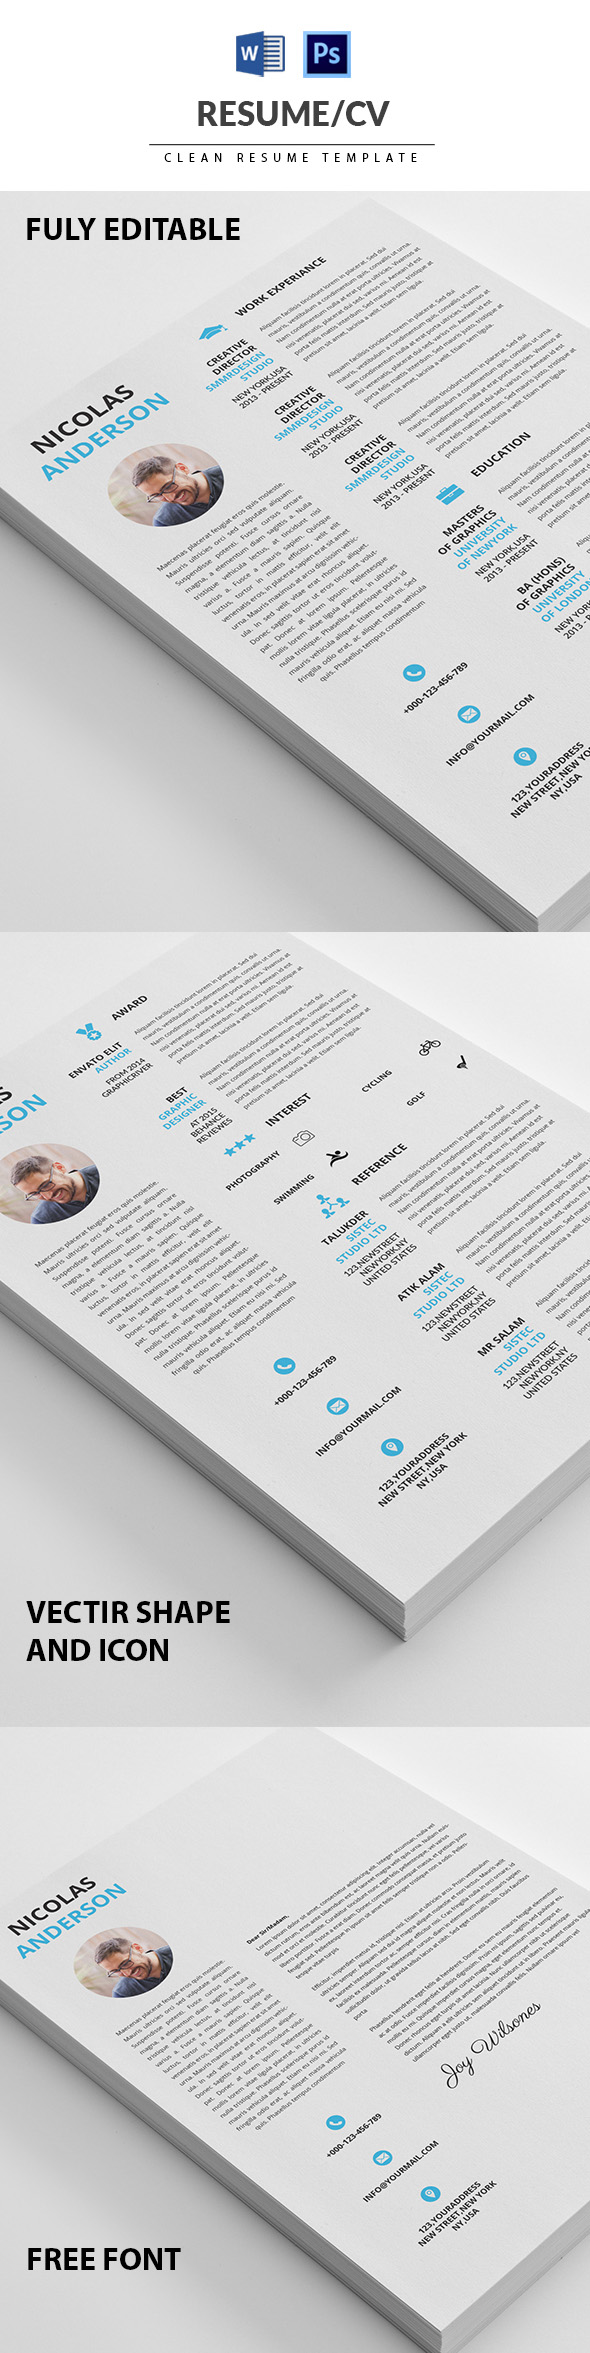 50 Best Resume Templates For 2018   44